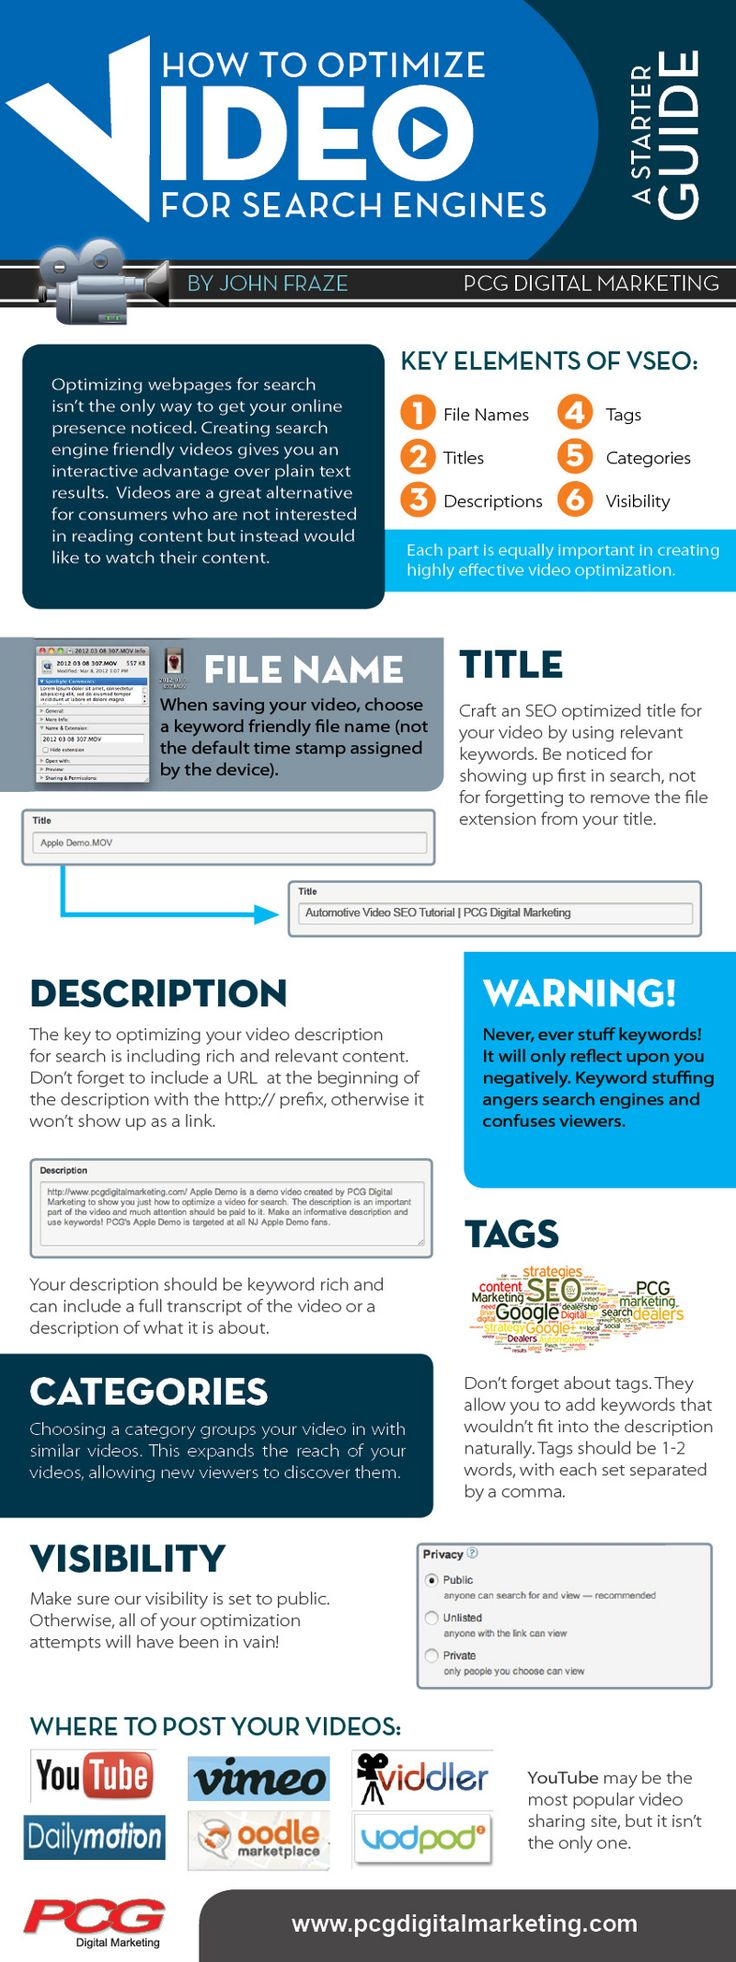 Video Search Engine Optimization Guide1 Video Search Engine Optimization Guide